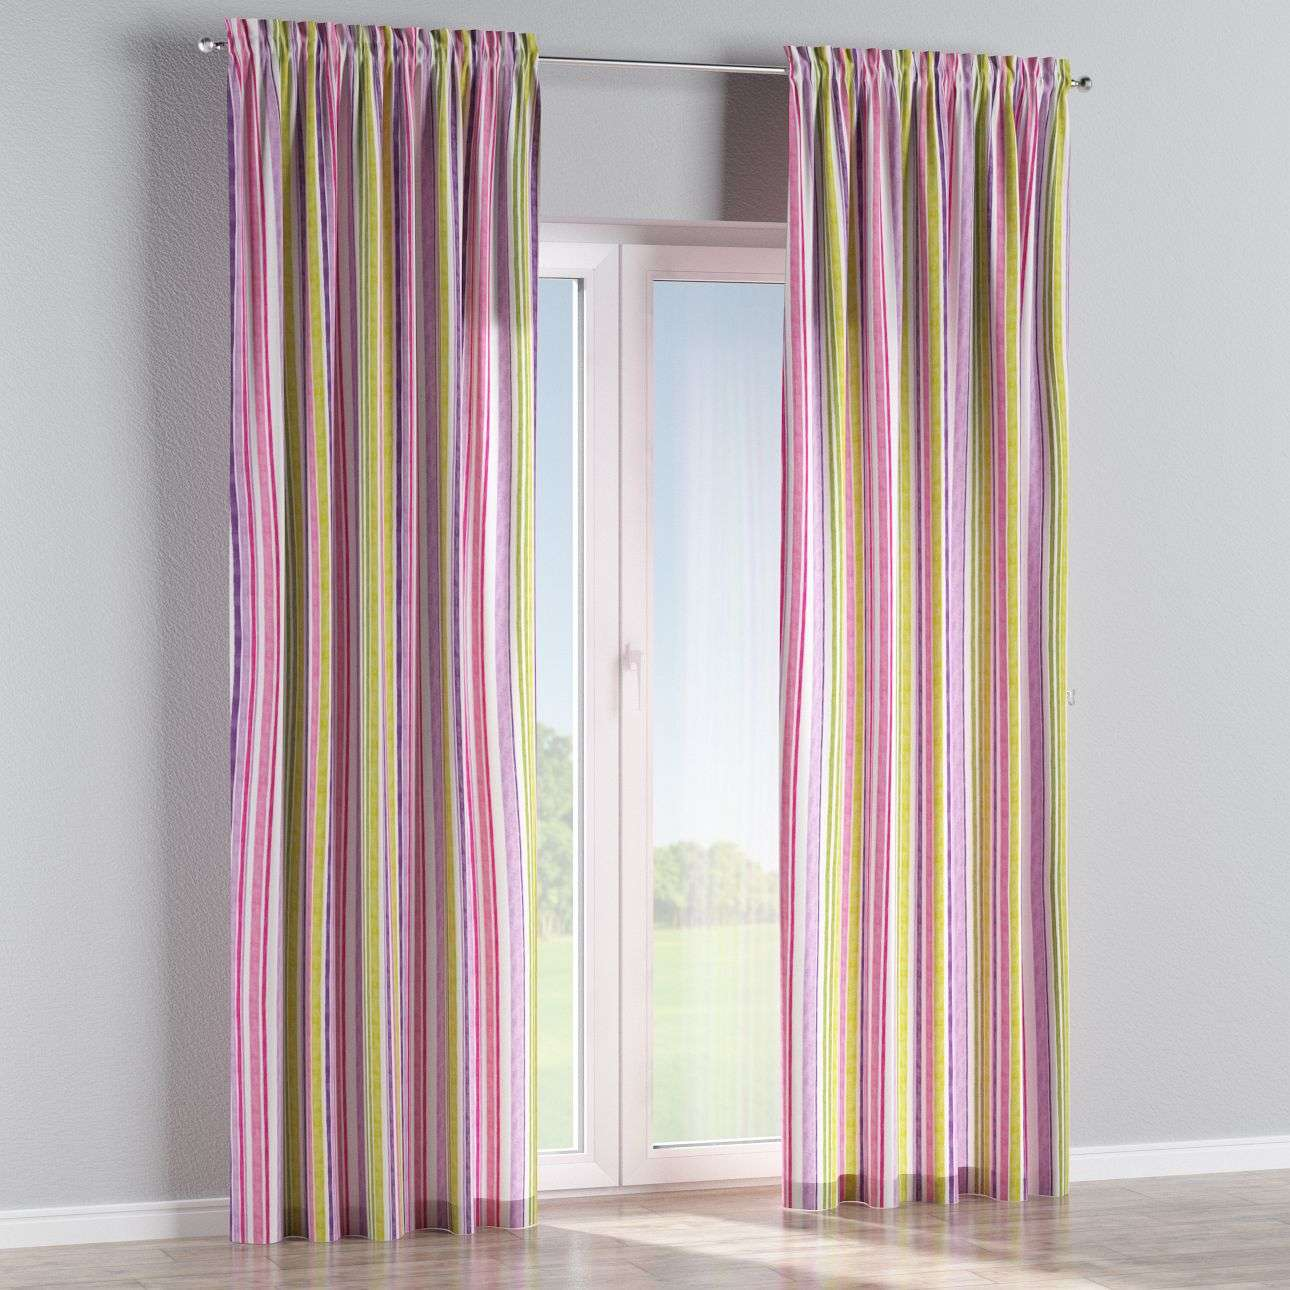 Slot and frill curtains in collection Monet, fabric: 140-01